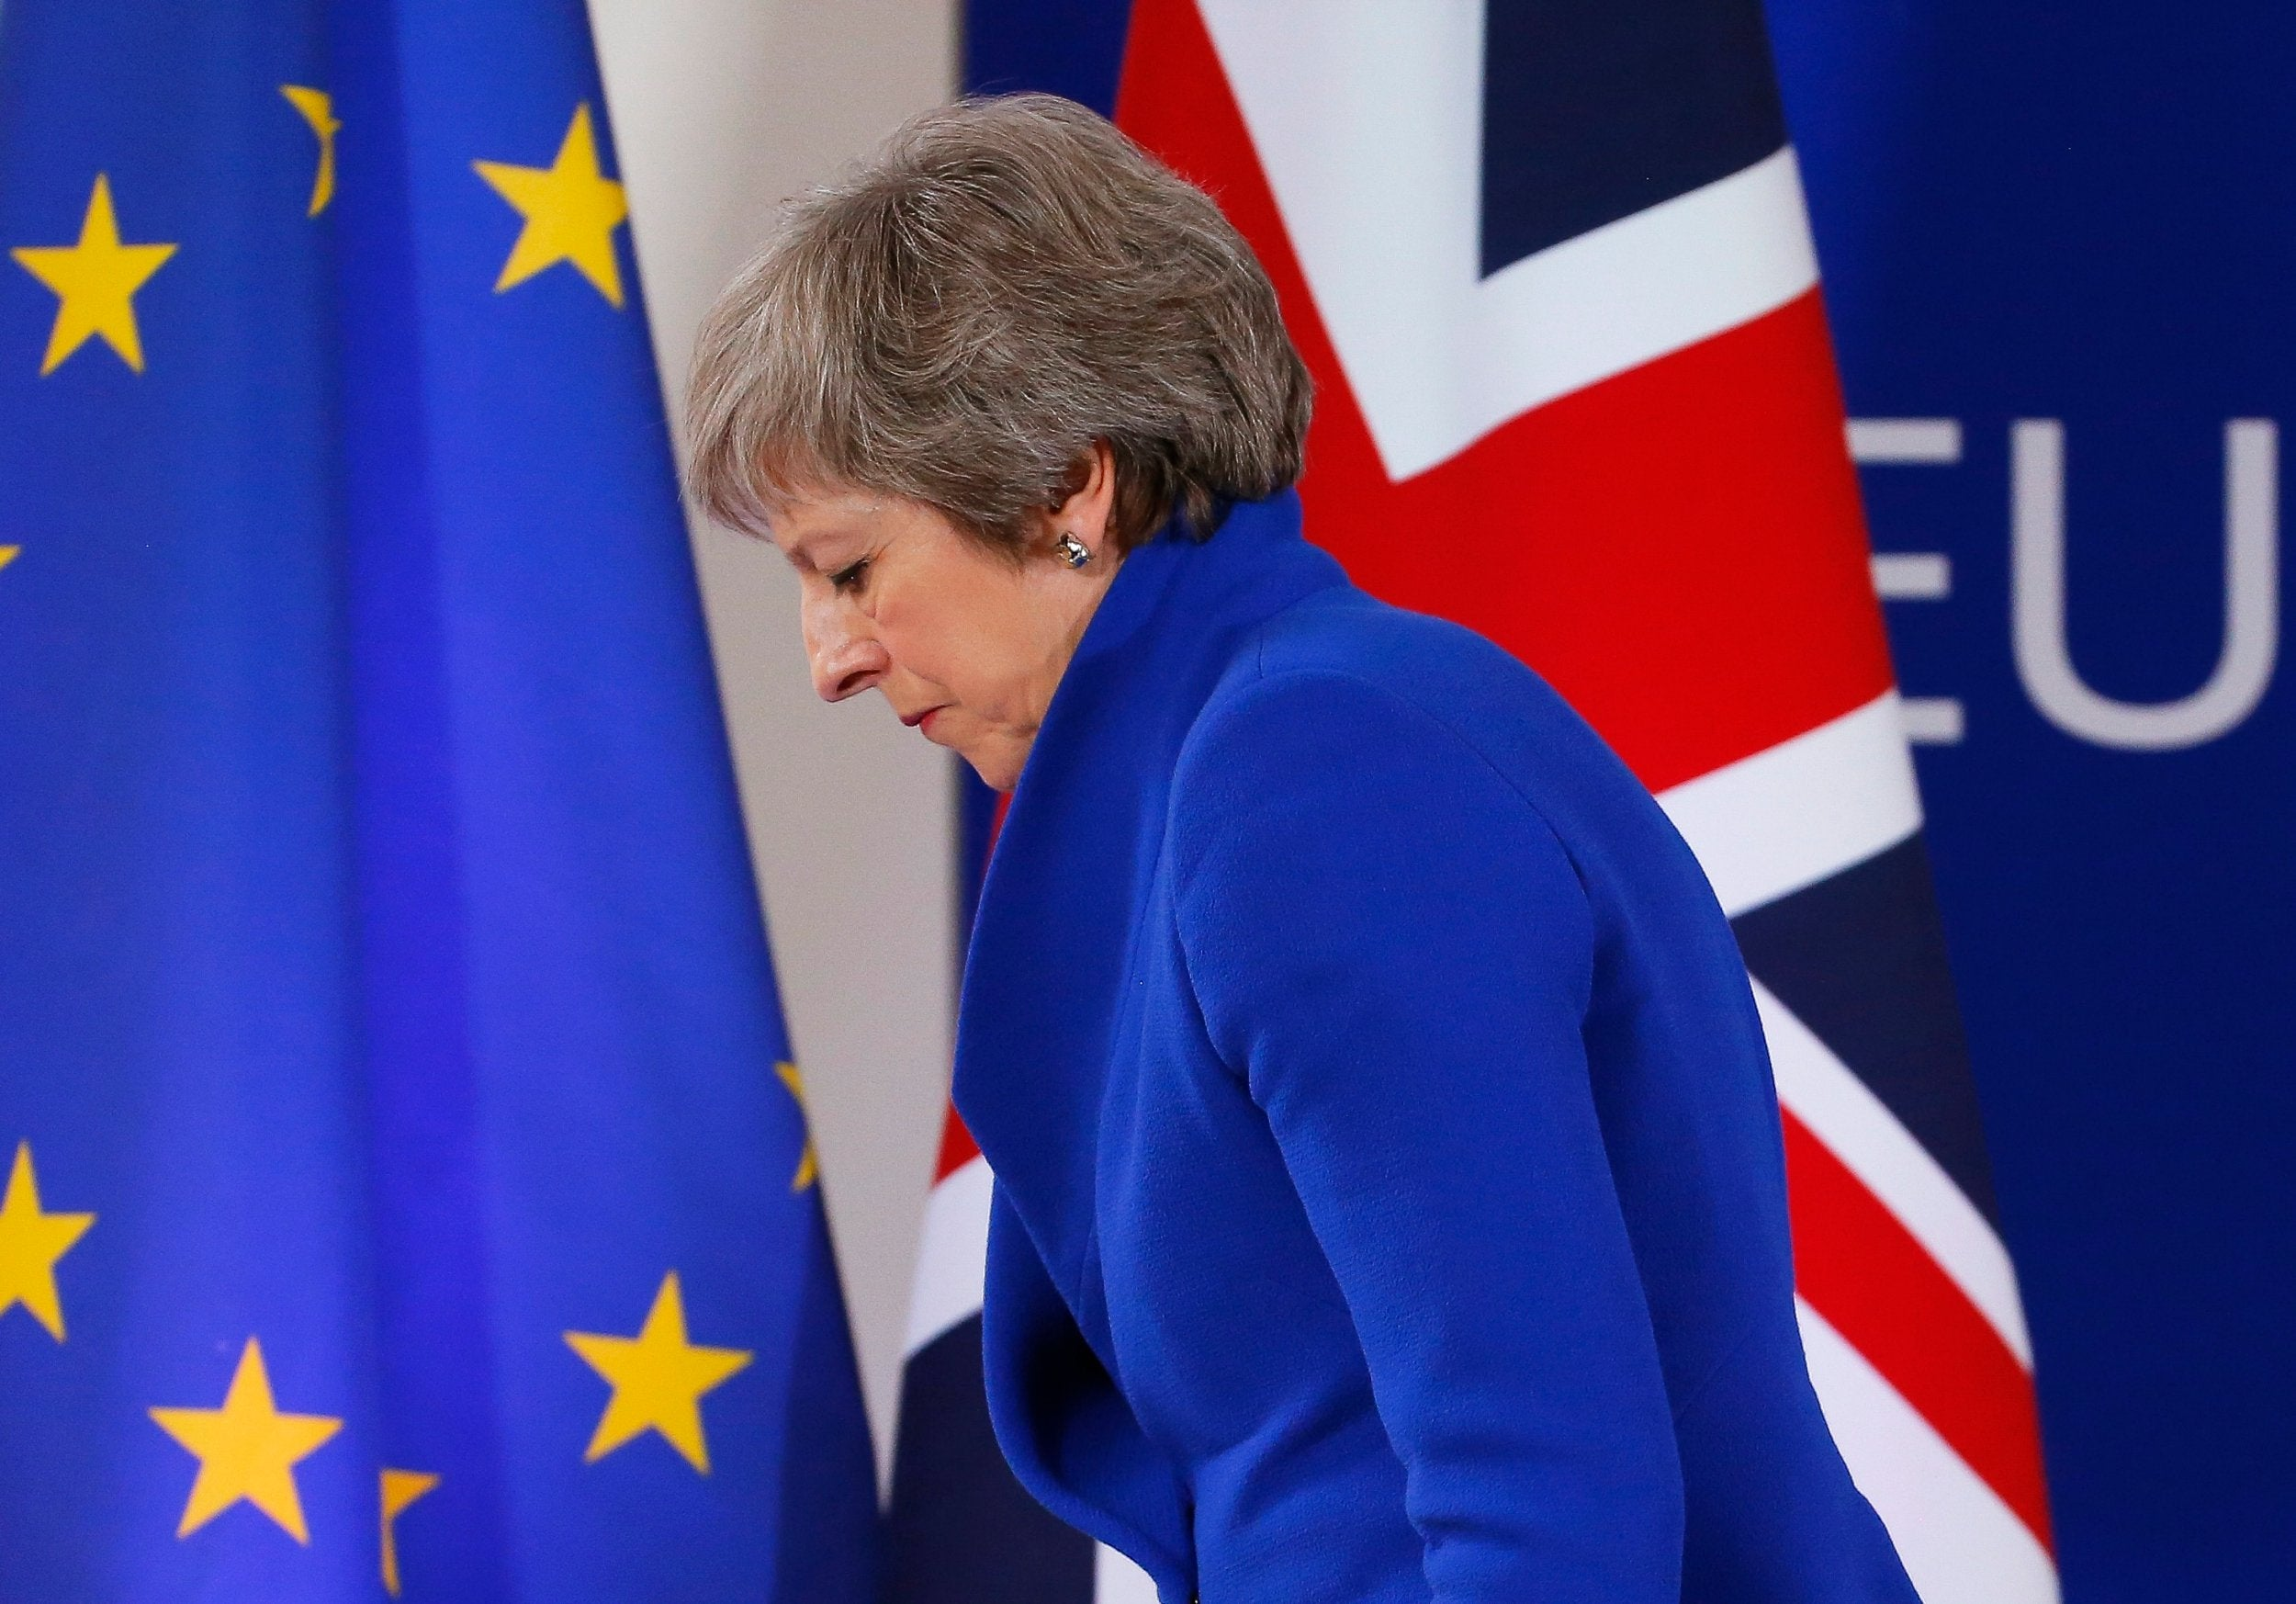 Theresa May's plan to let MPs veto Brexit backstop would 'rip up withdrawal agreement', Brussels warns